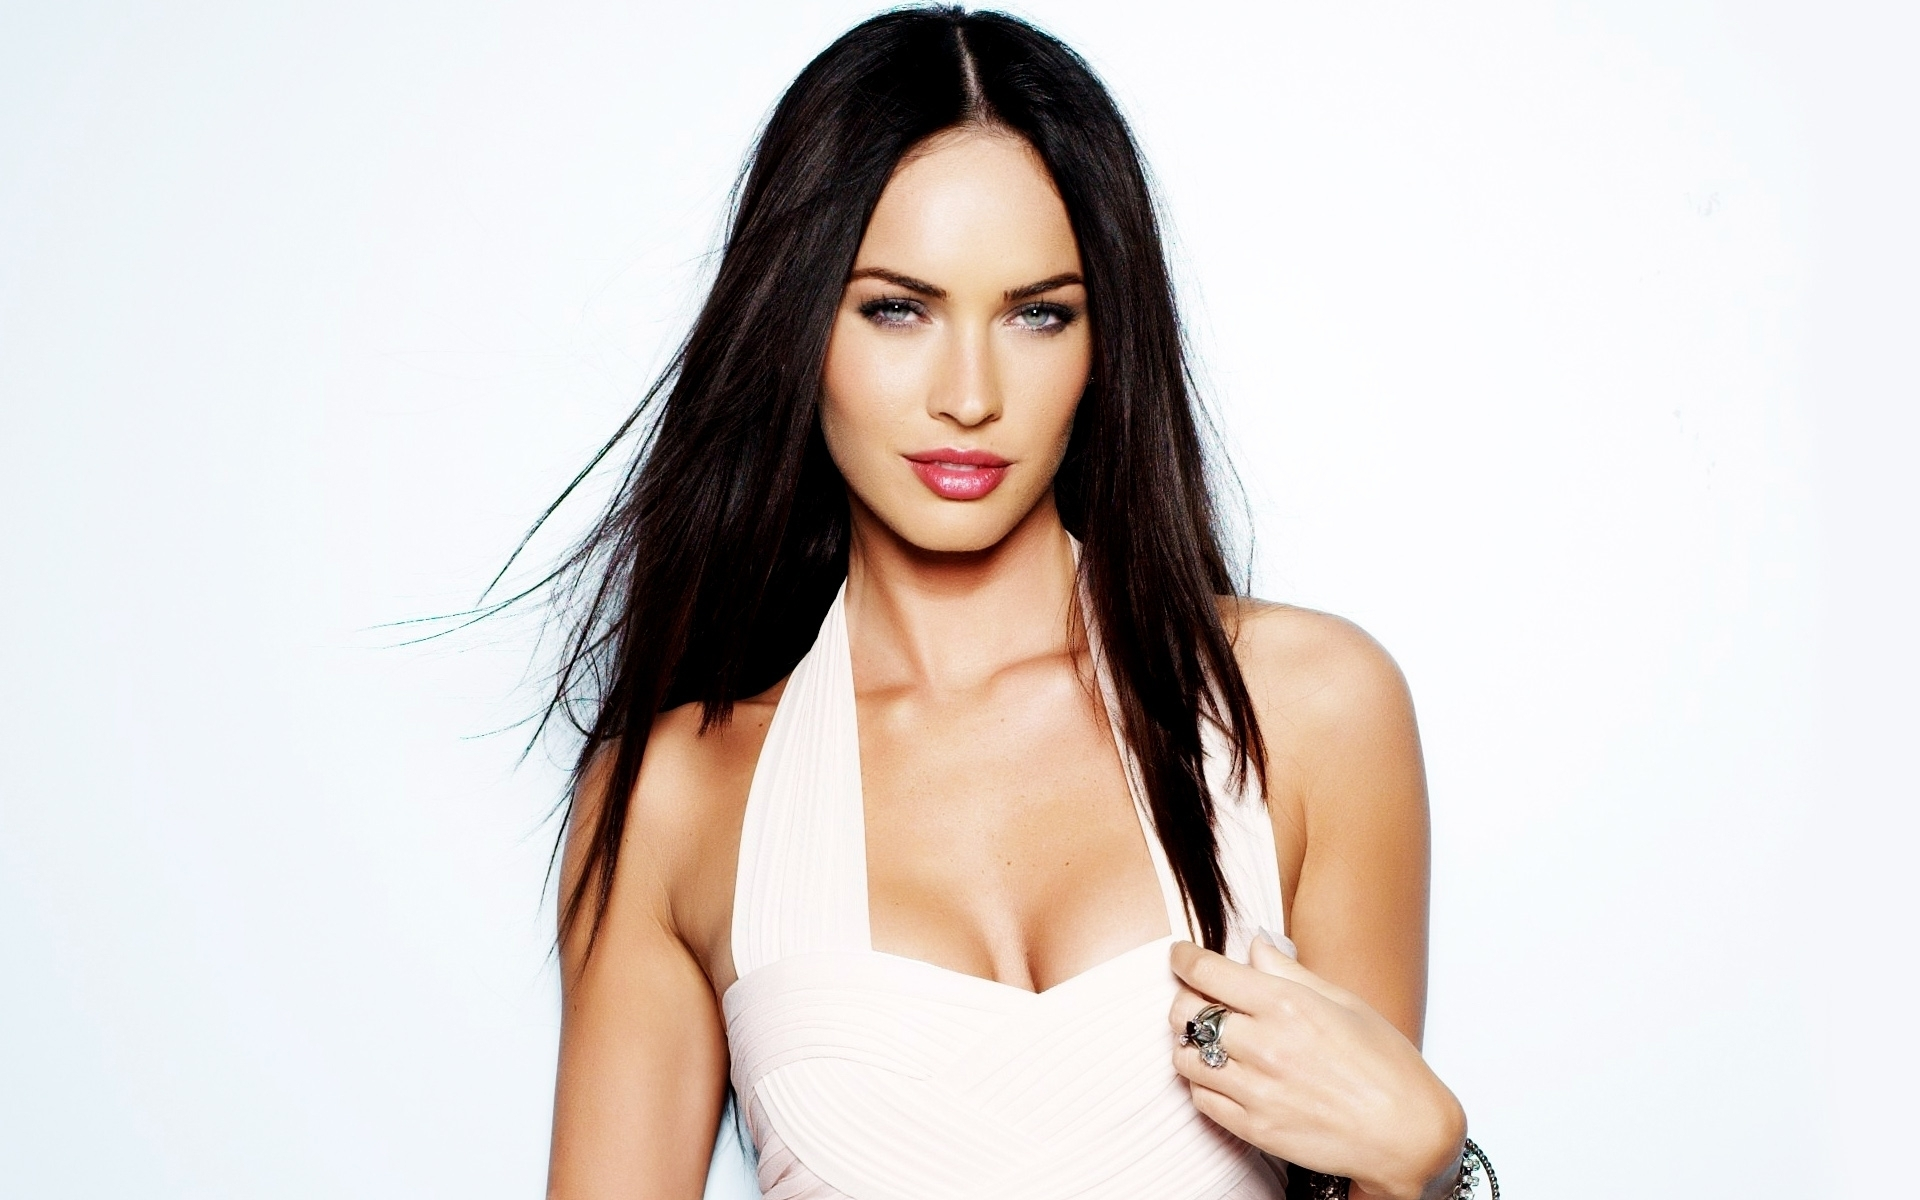 37178 download wallpaper People, Megan Fox, Girls, Actors screensavers and pictures for free